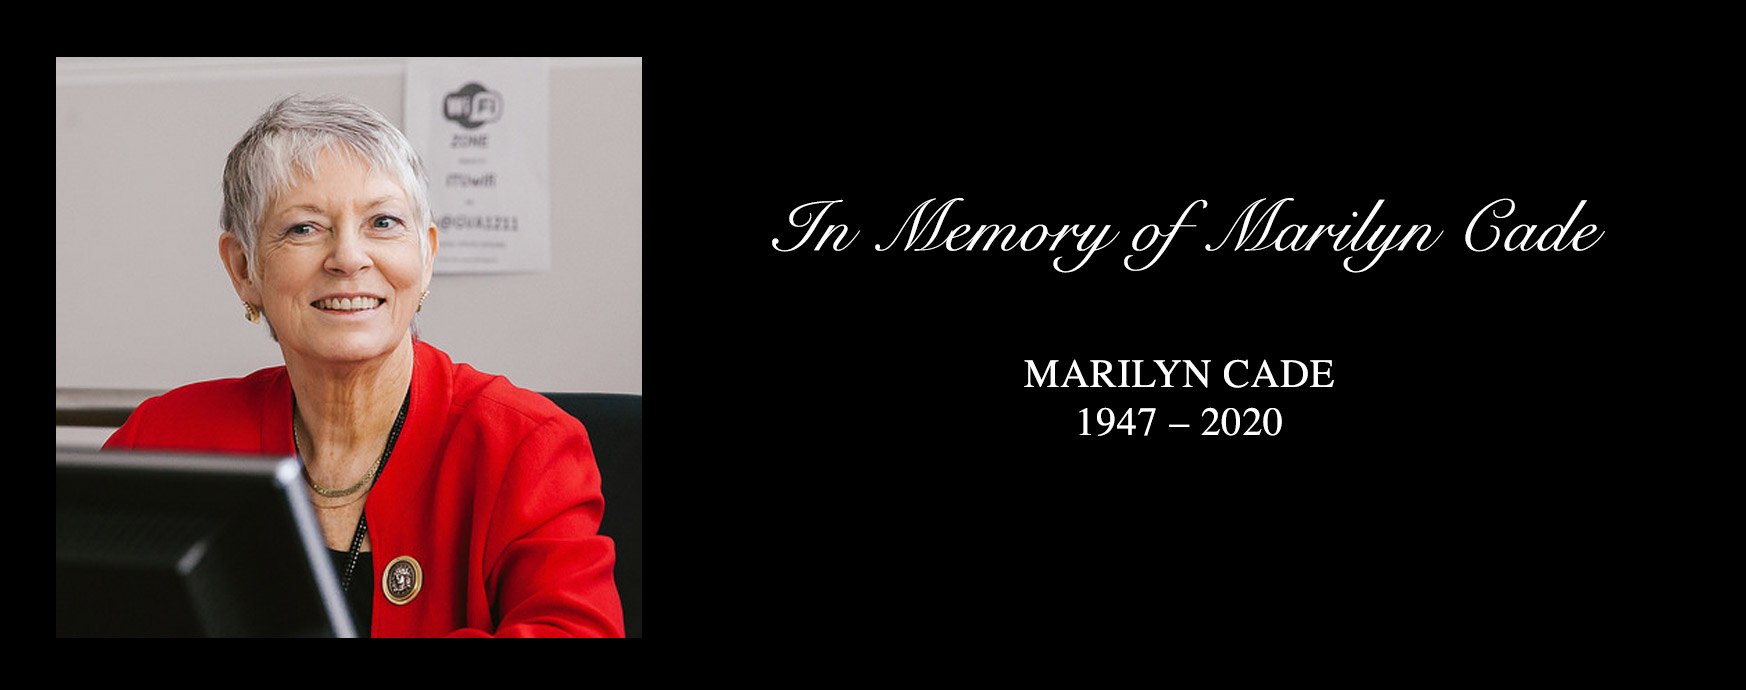 In memory of Marilyn Cade